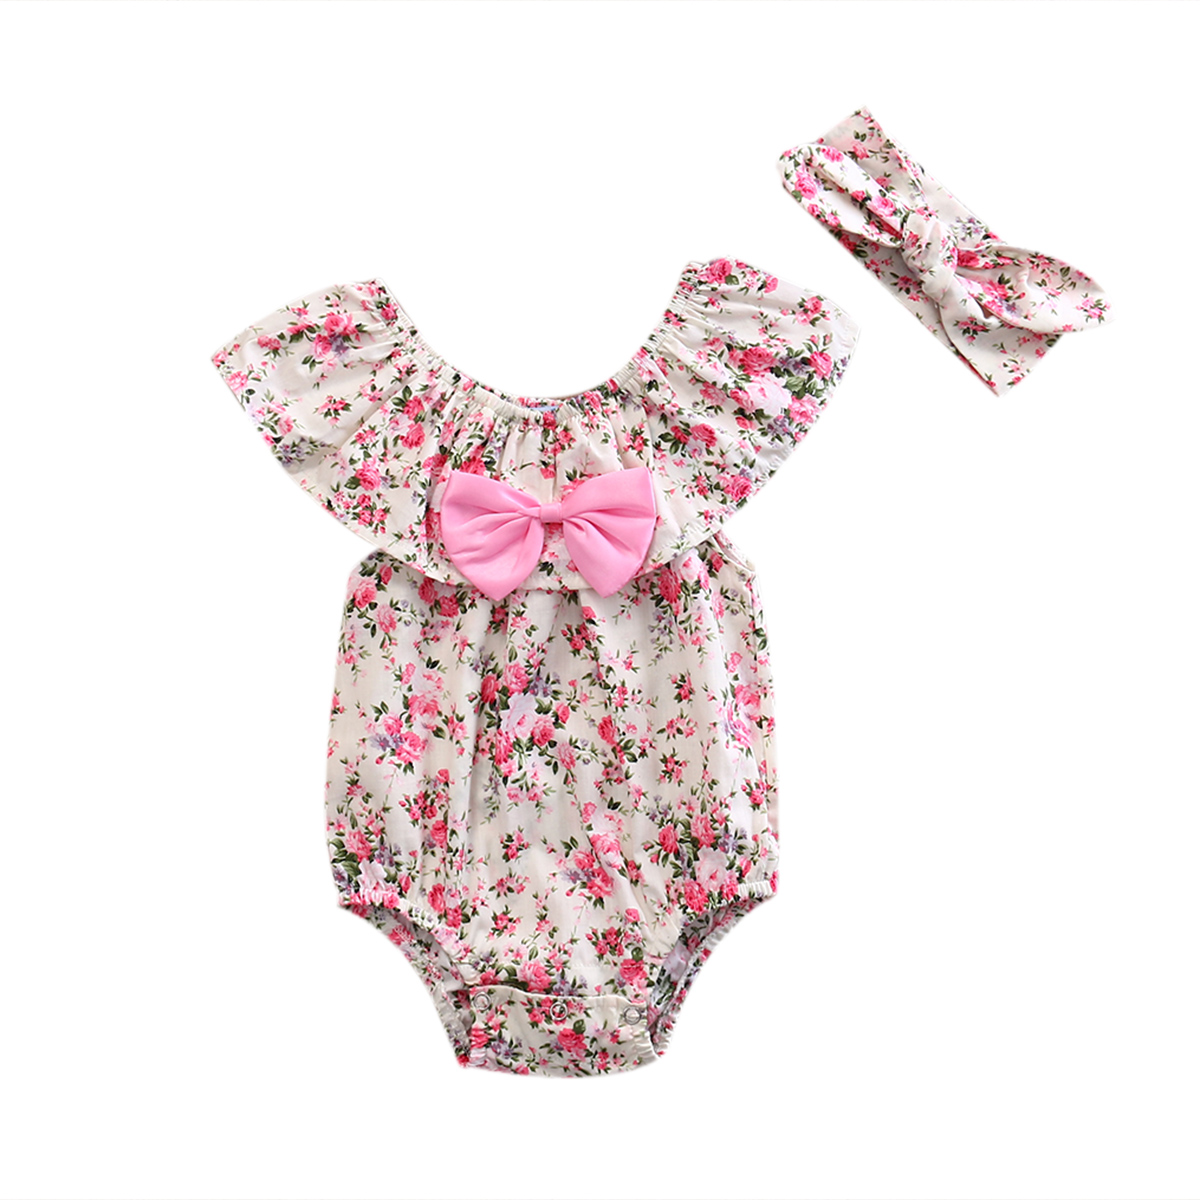 2017 New Hot Newborn Baby Girls   Romper   Lace Floral   Romper   Ruffle Jumpsuit Playsuit Clothes One Piece Suit Beach Dress